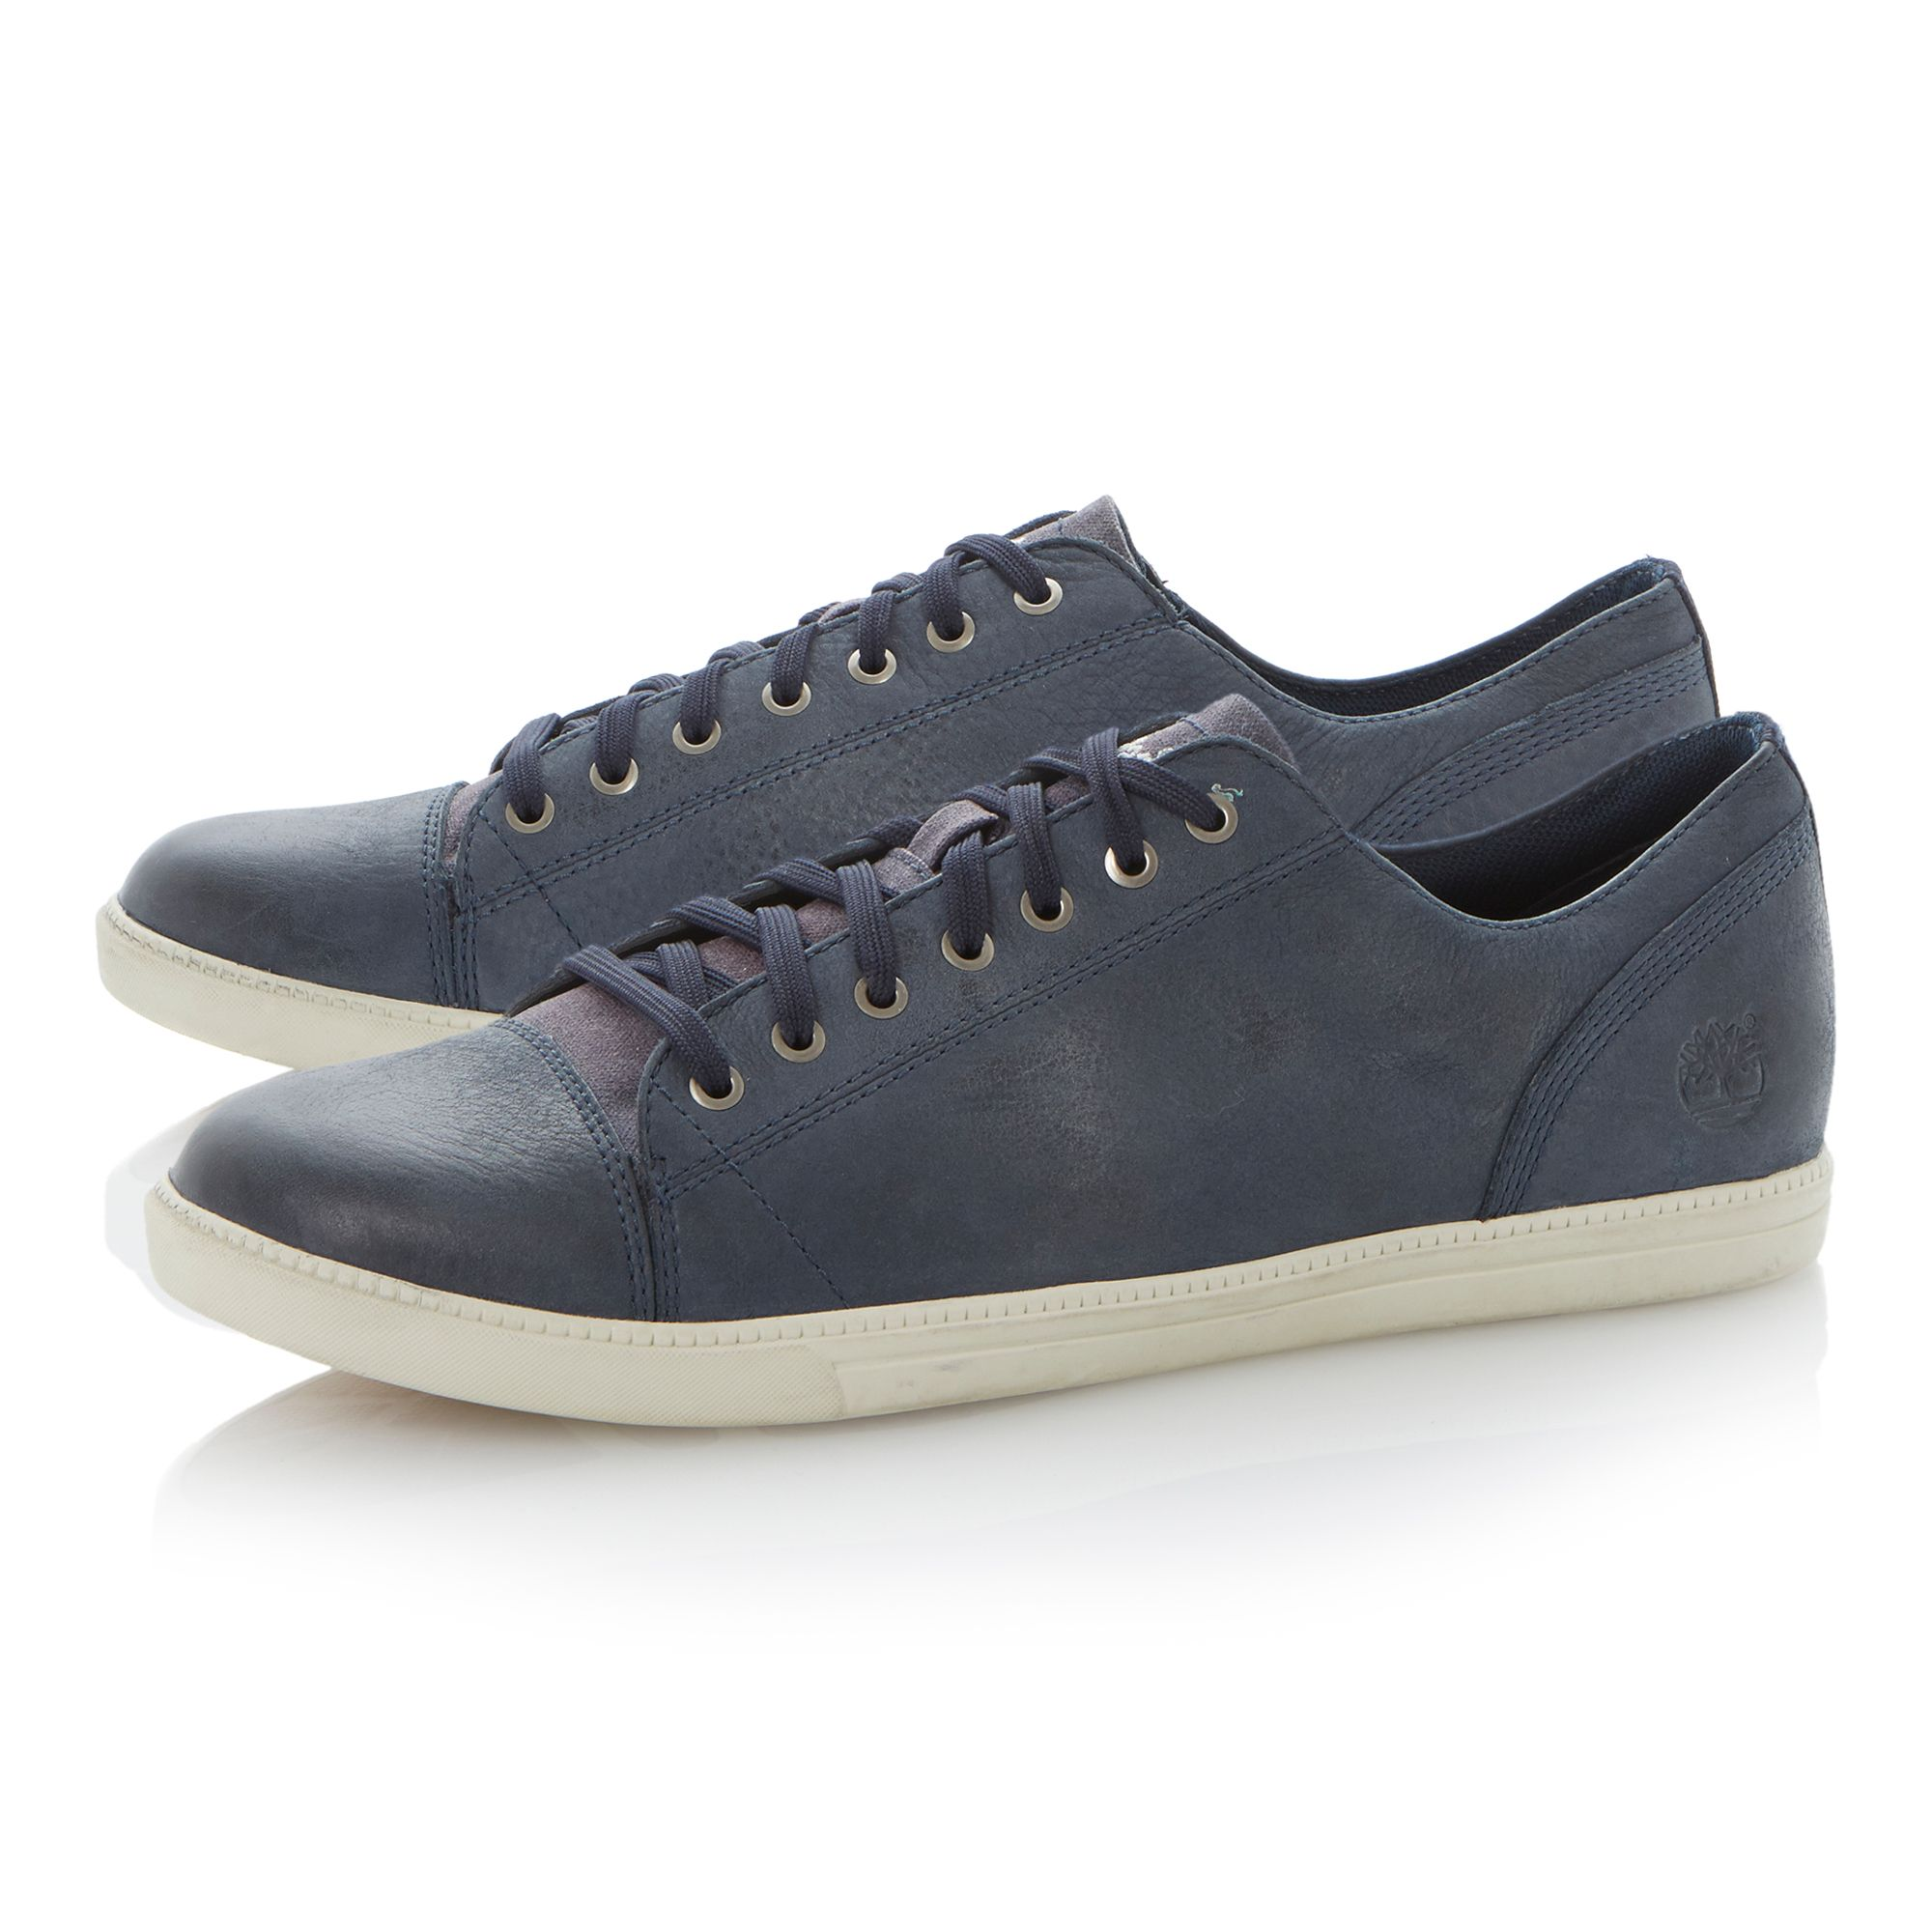 6448a lace up toecap leather sneakers